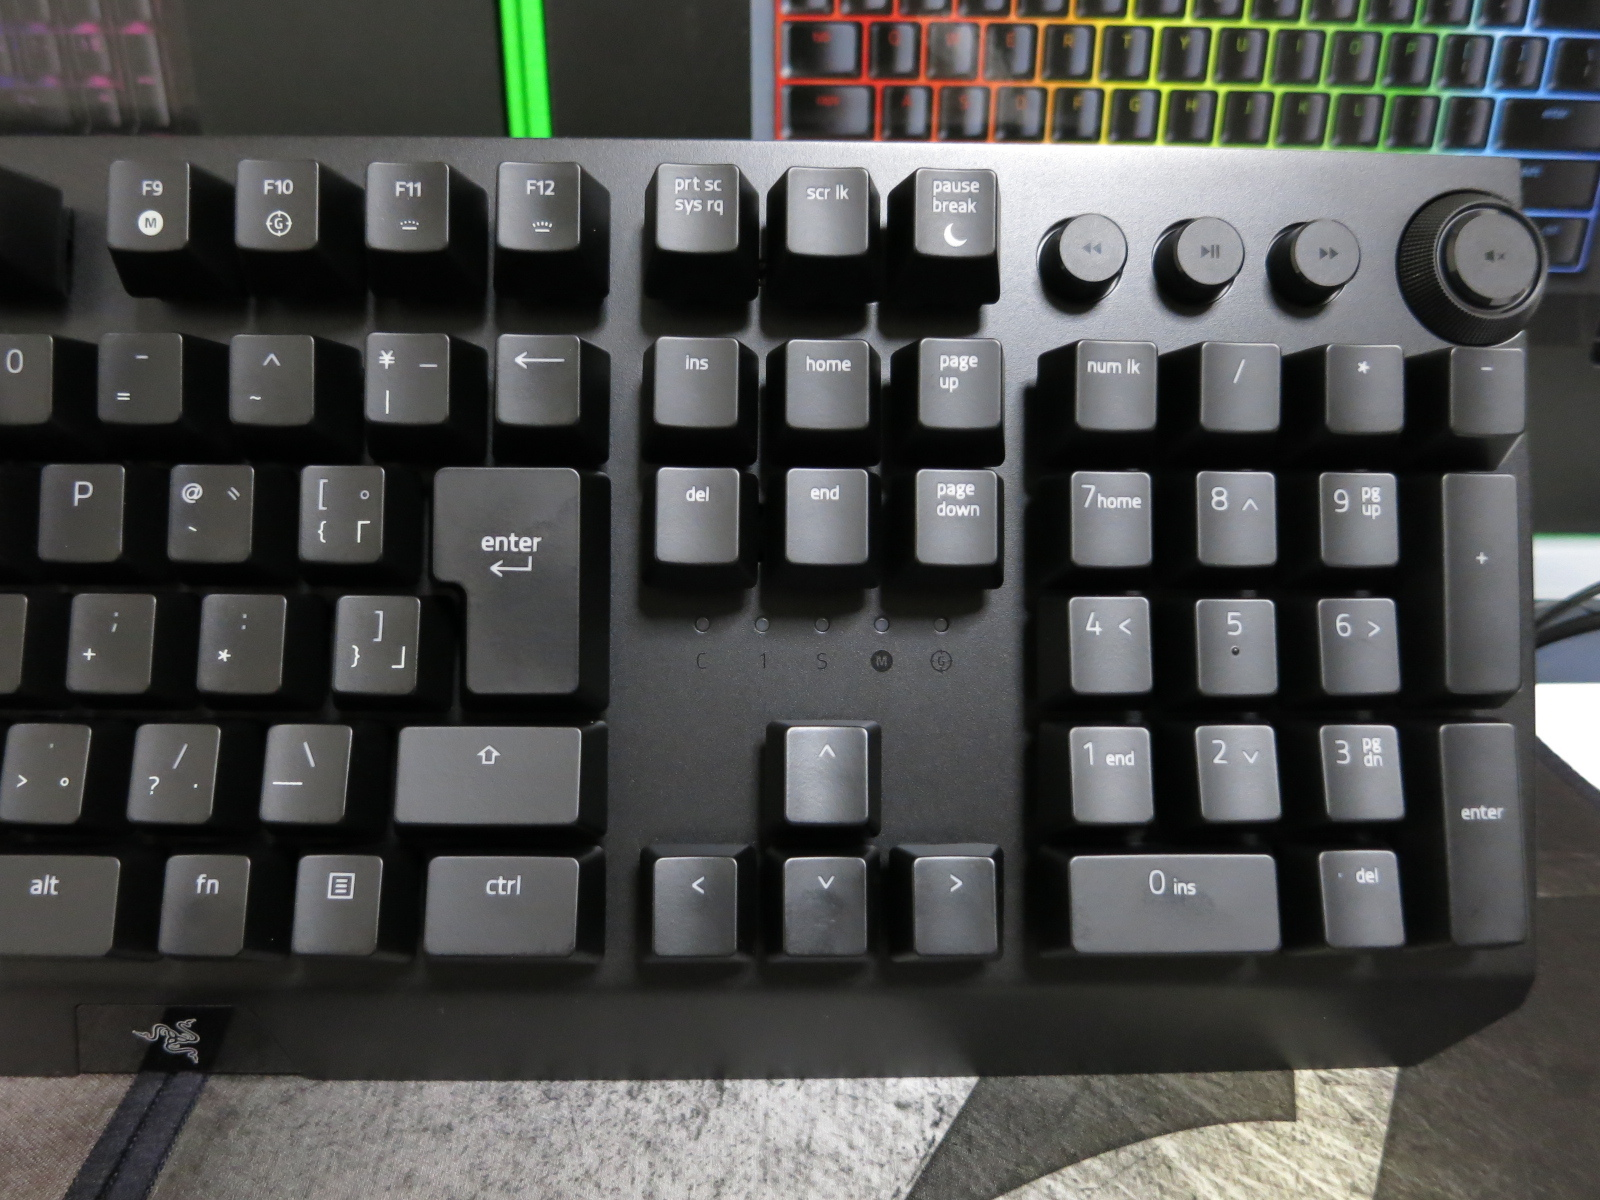 Razer_BlackWidow_Elite_Review_11.jpg